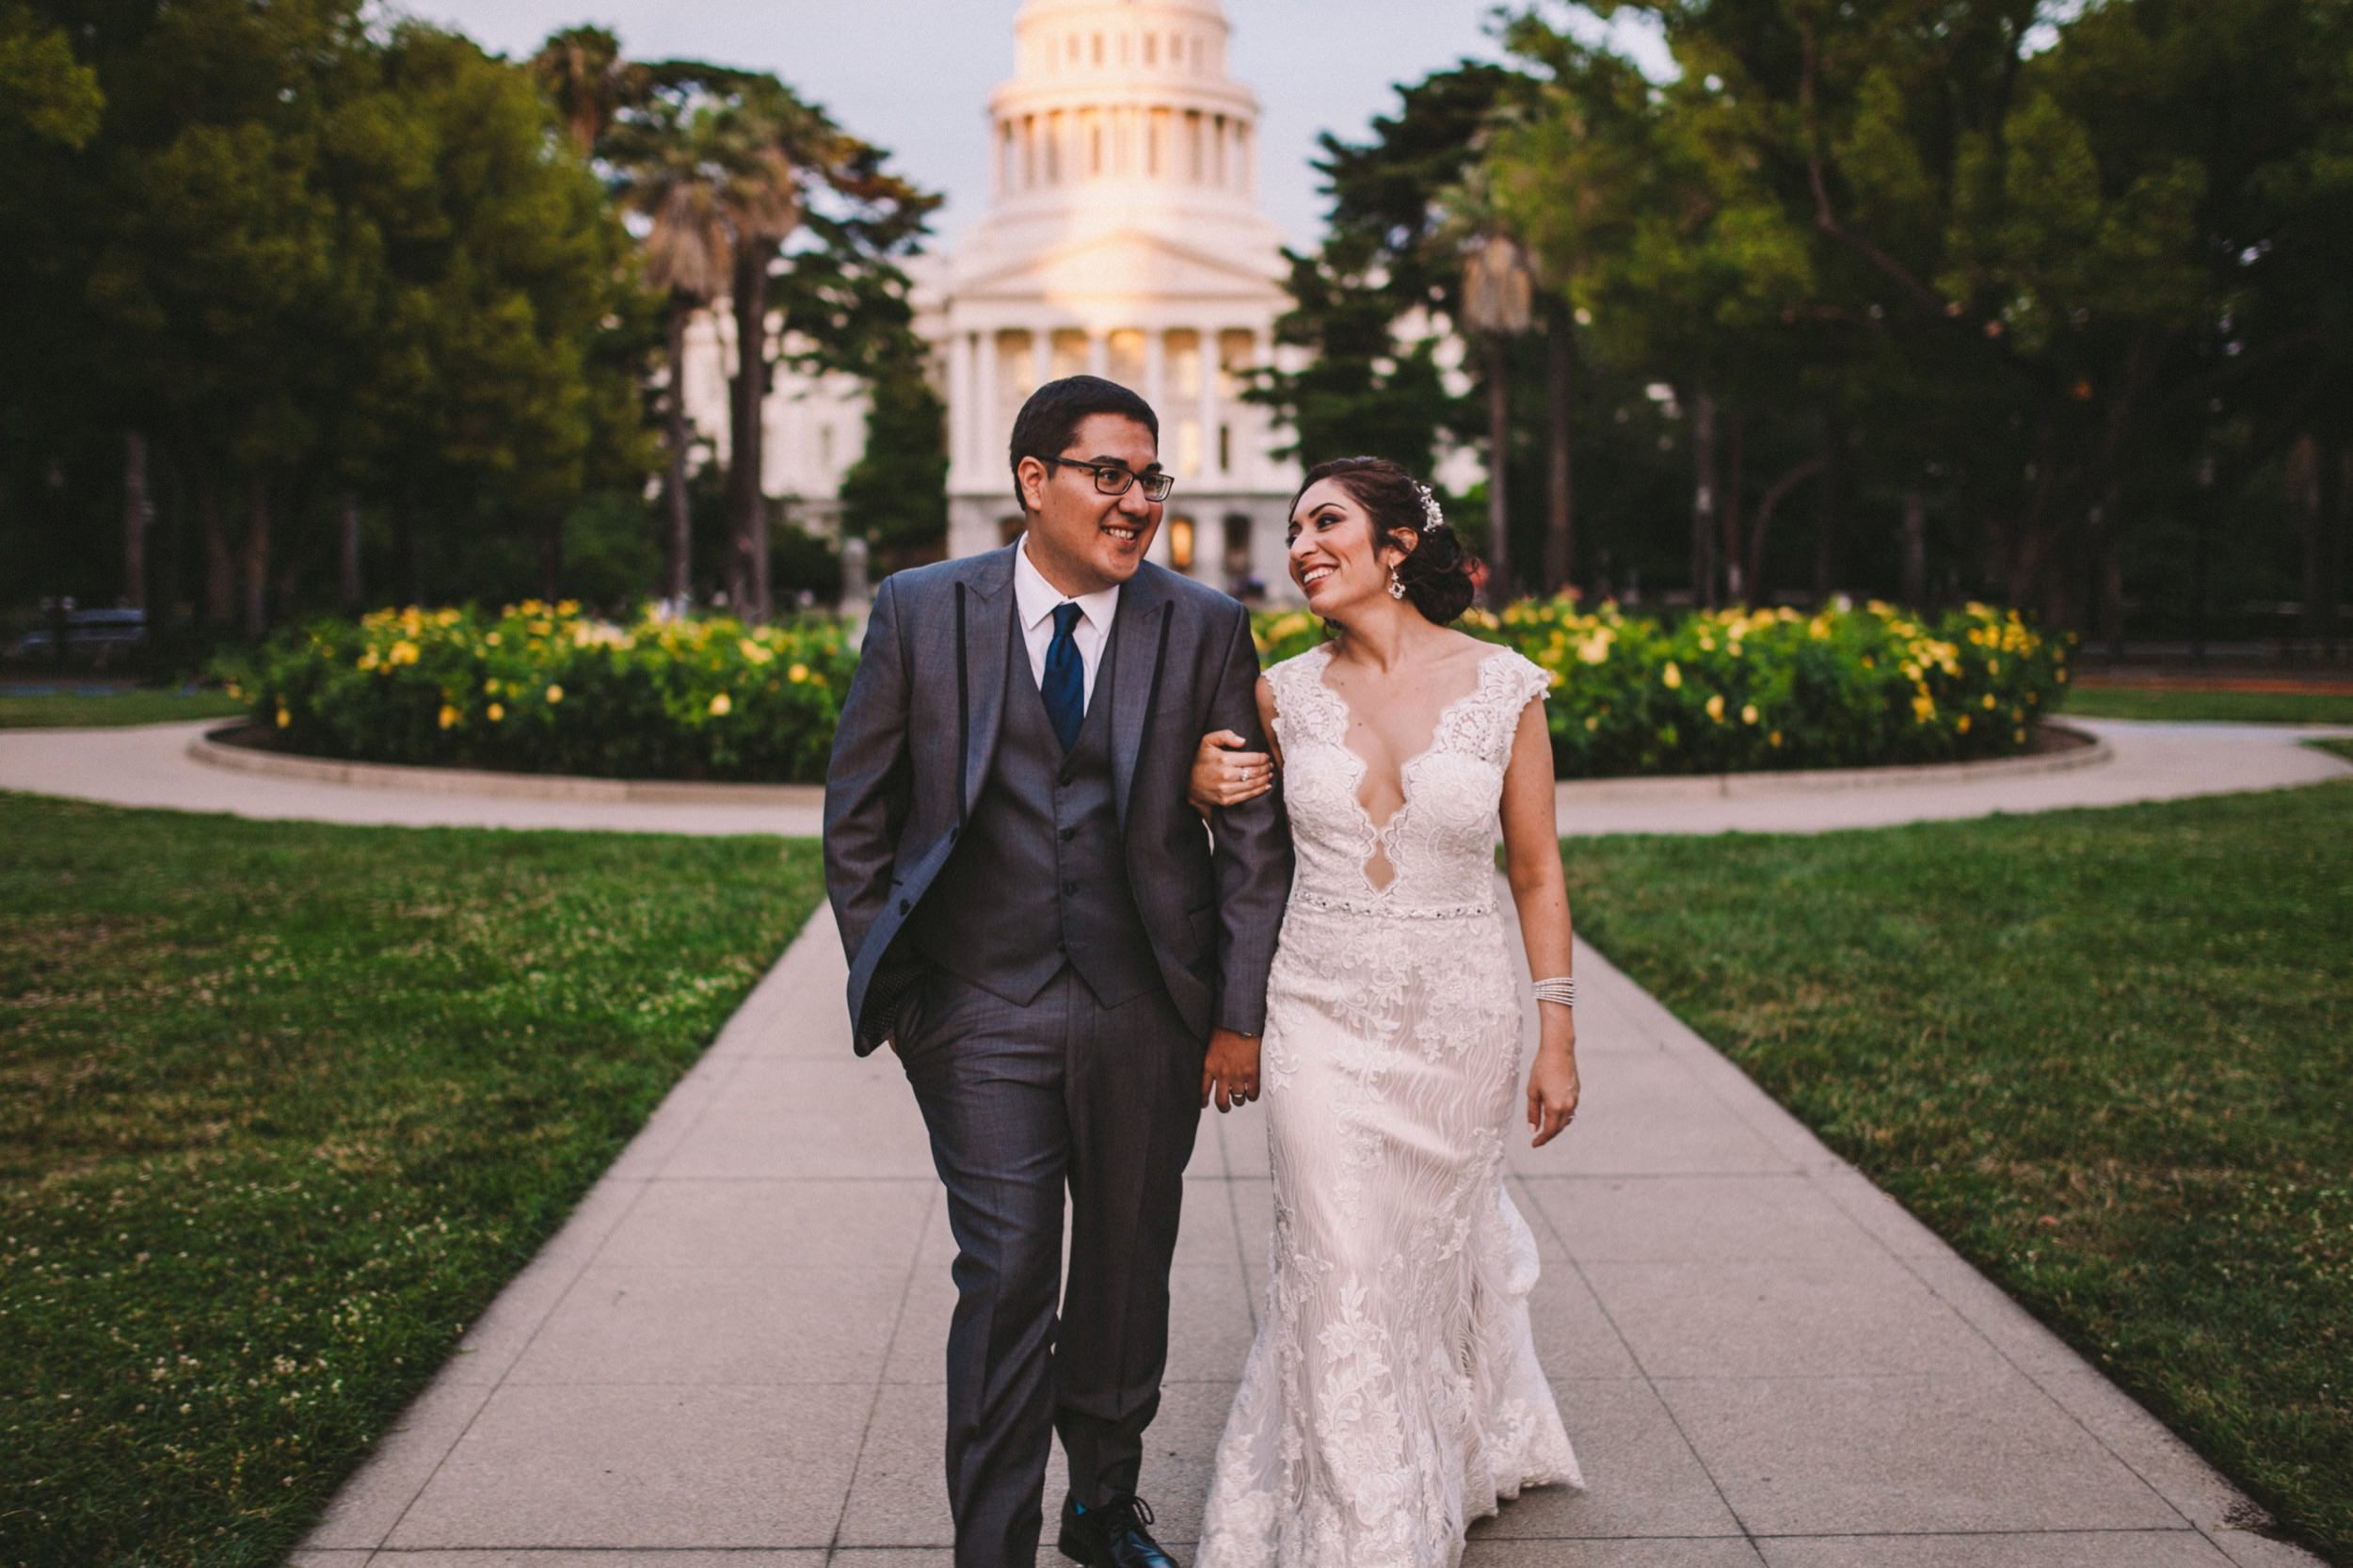 Sacramento Sutter Club & Capitol Building Wedding Photography-595.jpg